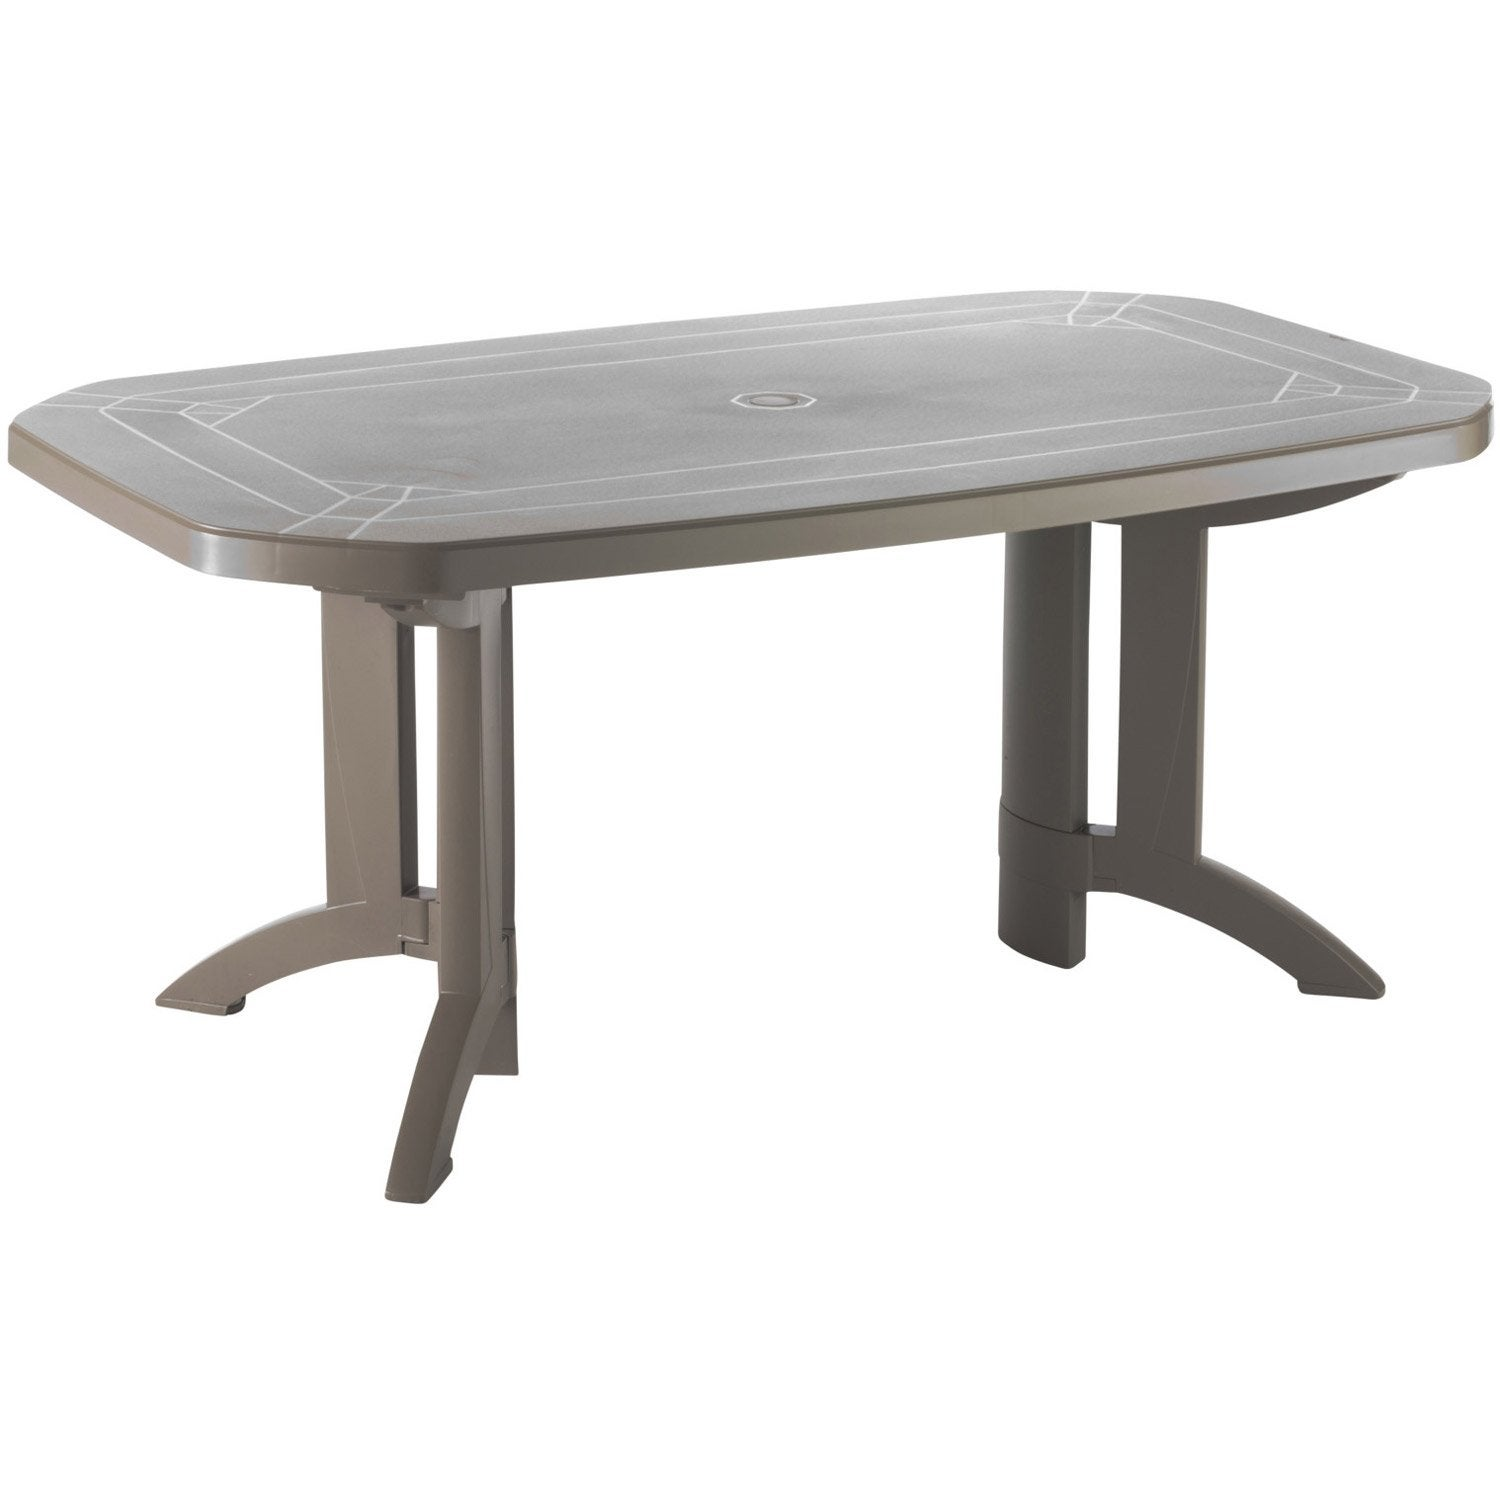 Table de jardin grosfillex v ga rectangulaire taupe 6 for Table exterieur grosfillex